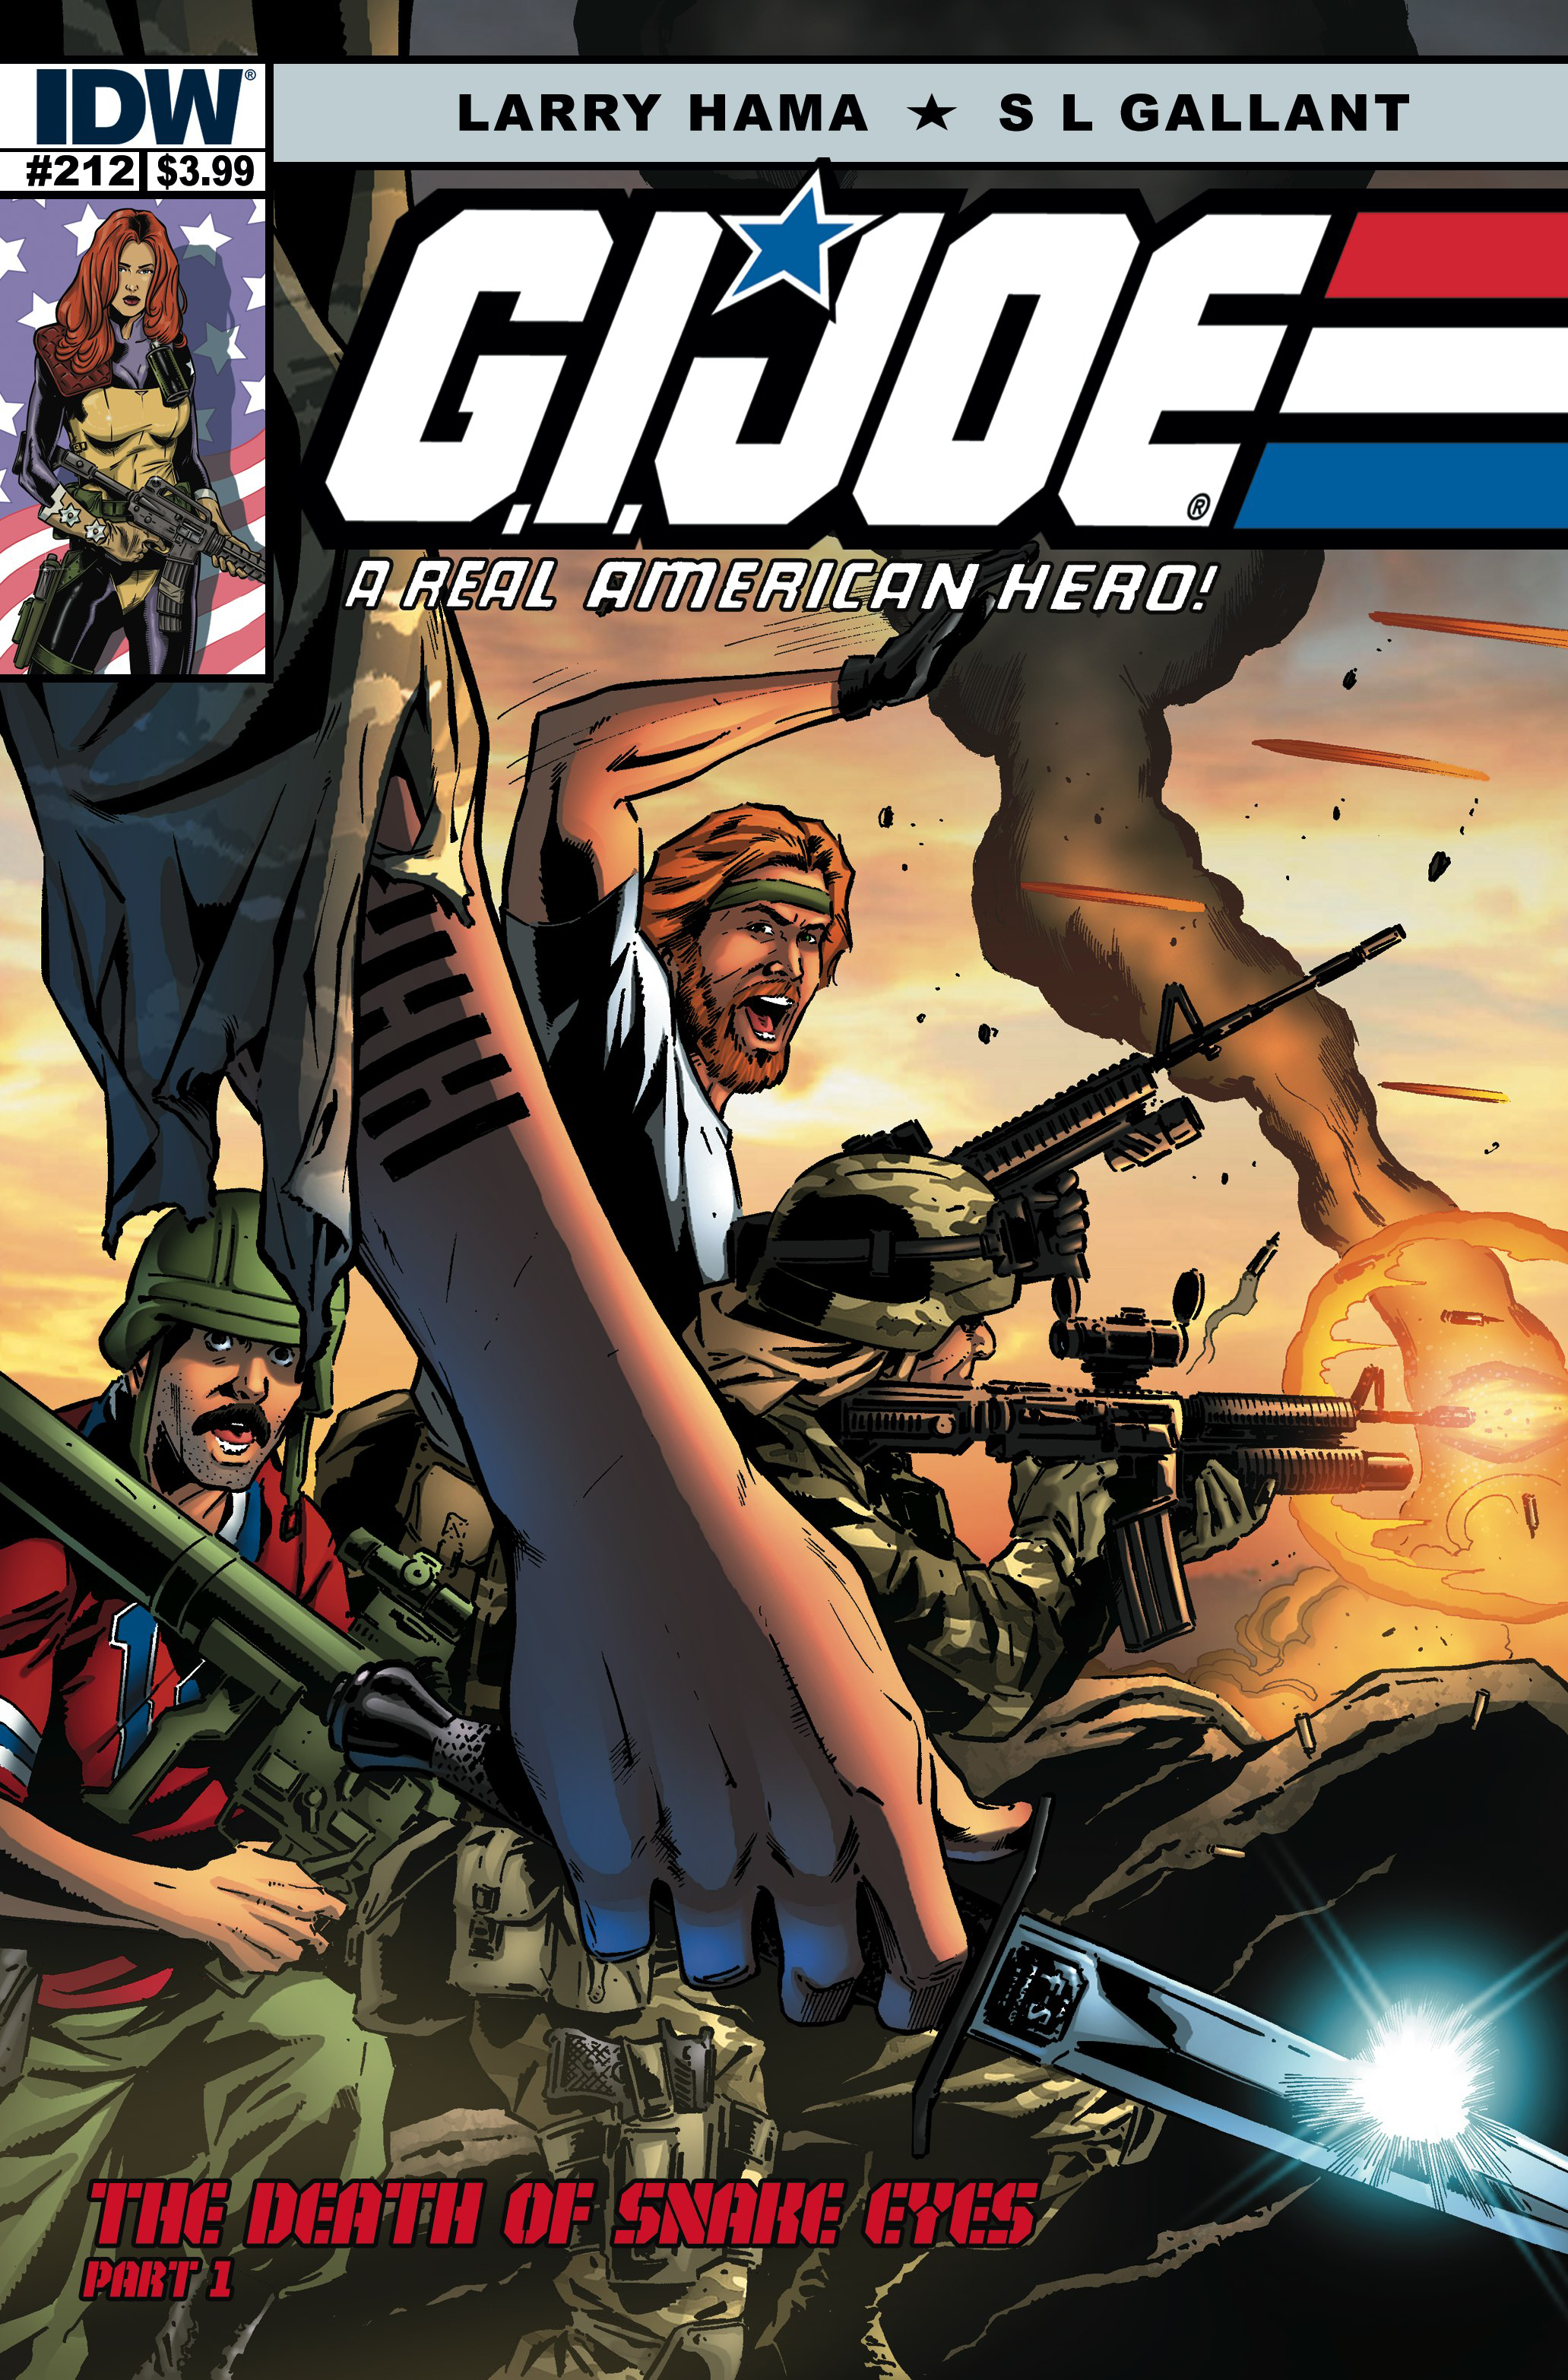 (USE MAR158302) GI JOE A REAL AMERICAN HERO #212